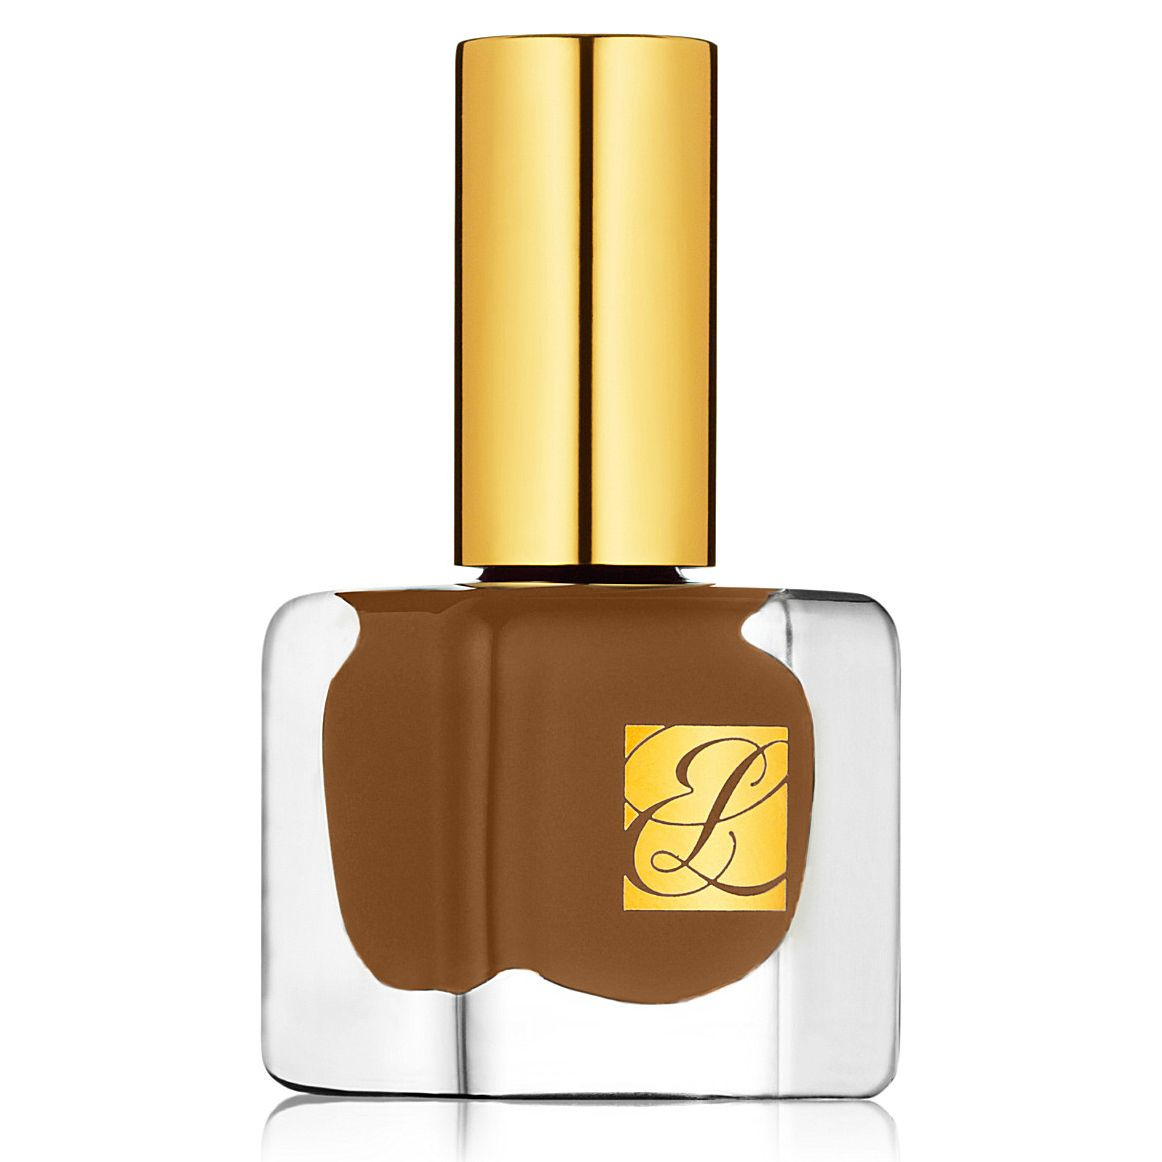 Nude Nail Polish Review - The Best Nude Nail Varnishes For All Skin ...